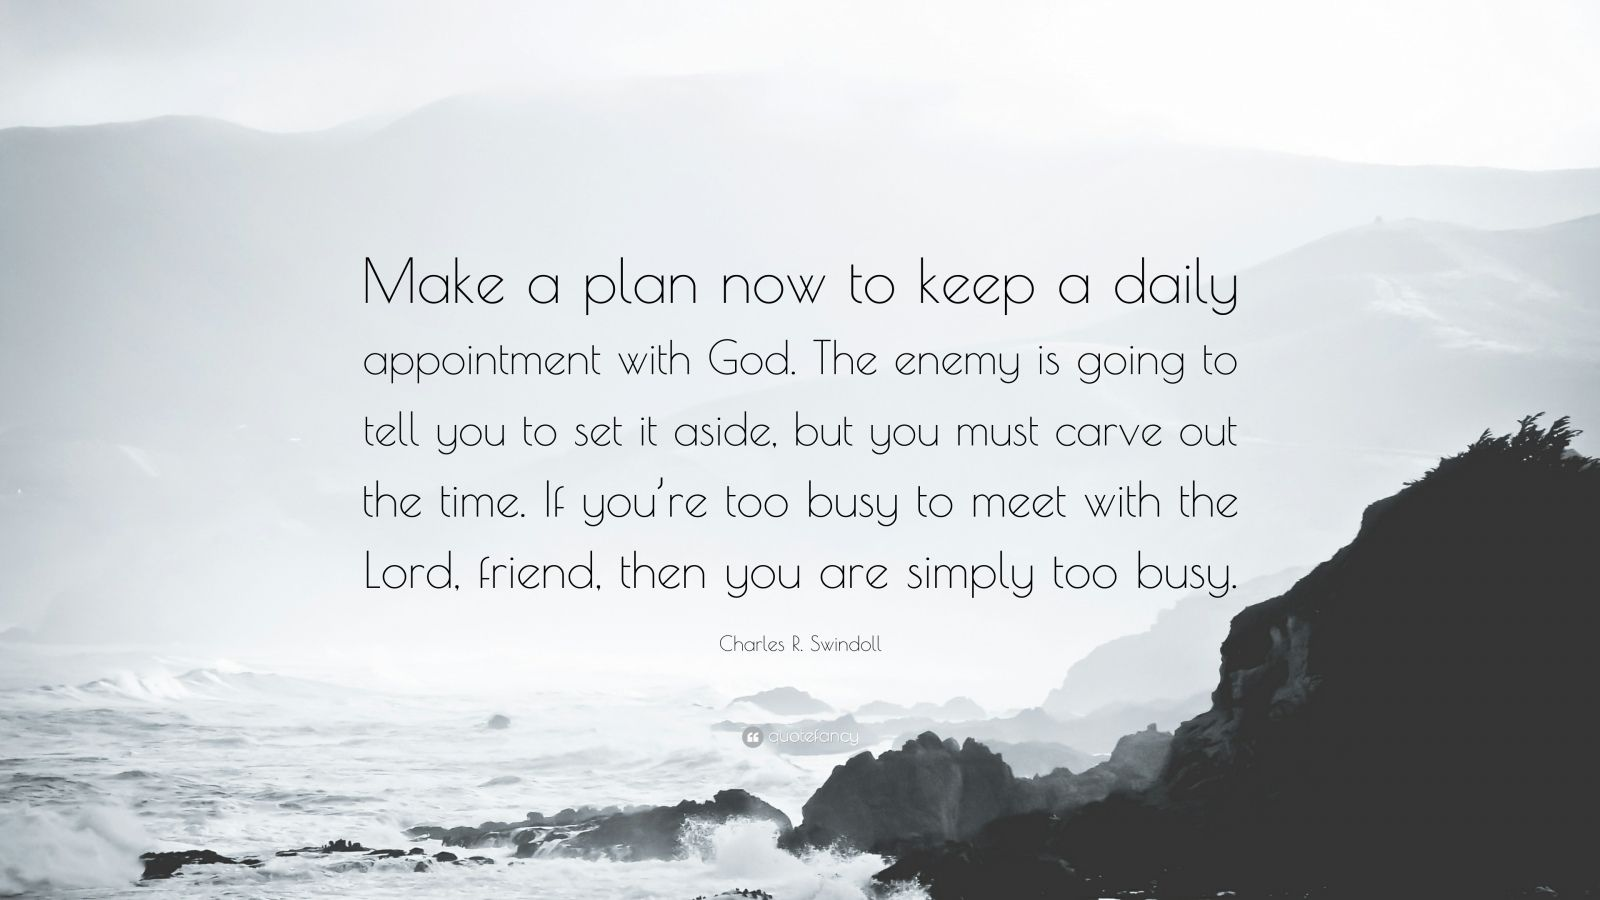 """Charles R. Swindoll Quote: """"Make a plan now to keep a daily appointment with God. The enemy is going to tell you to set it aside, but you must carve out the time. If you're too busy to meet with the Lord, friend, then you are simply too busy."""""""